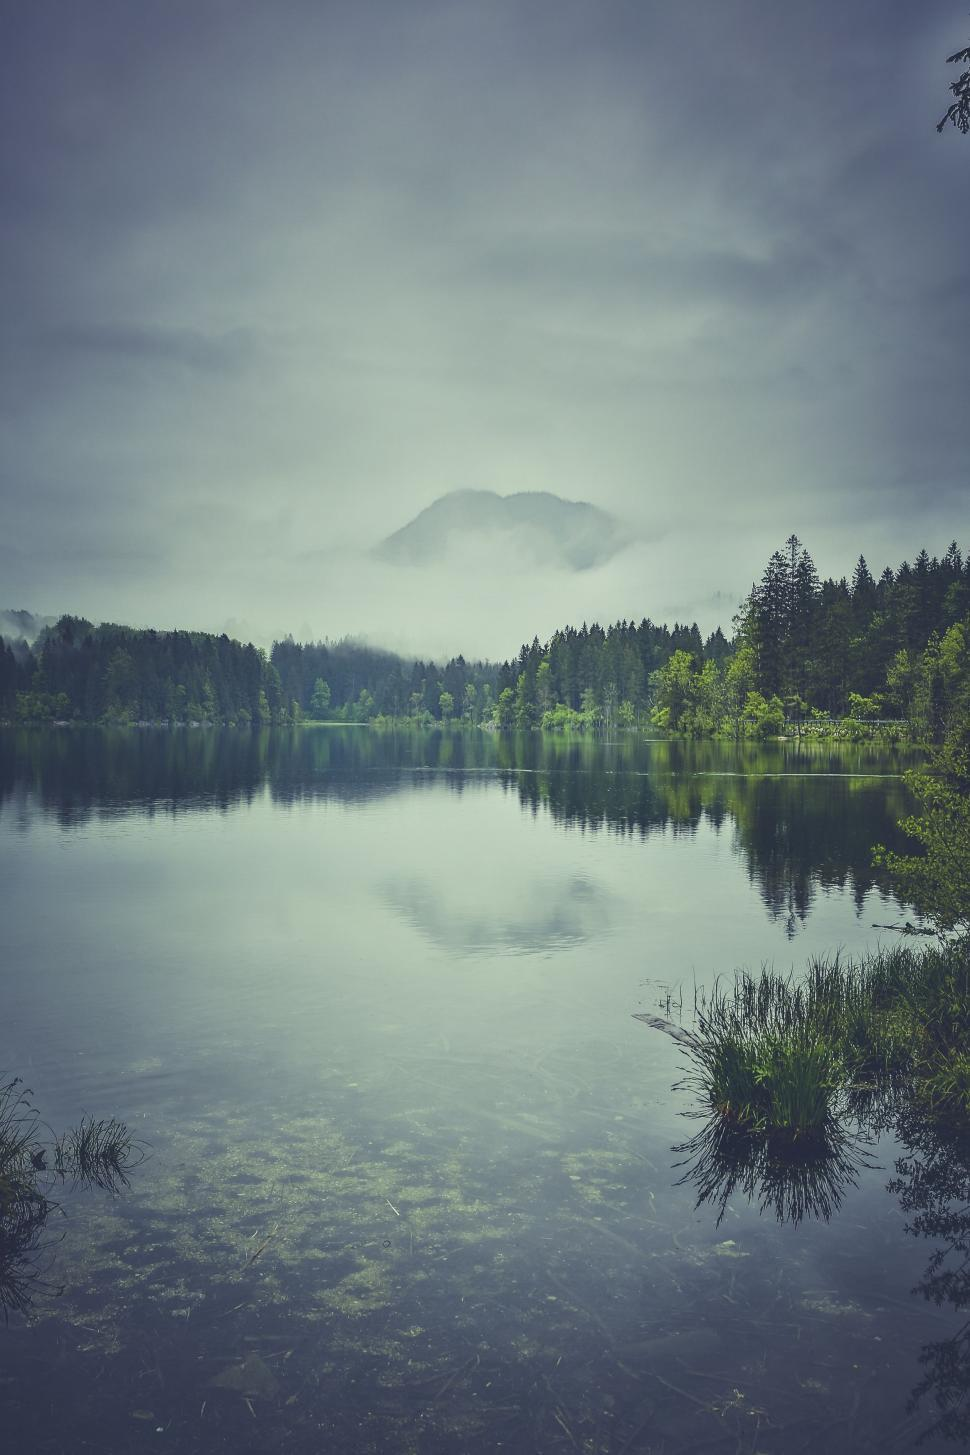 Download Free Stock Photo of Lake with Reflection of Trees